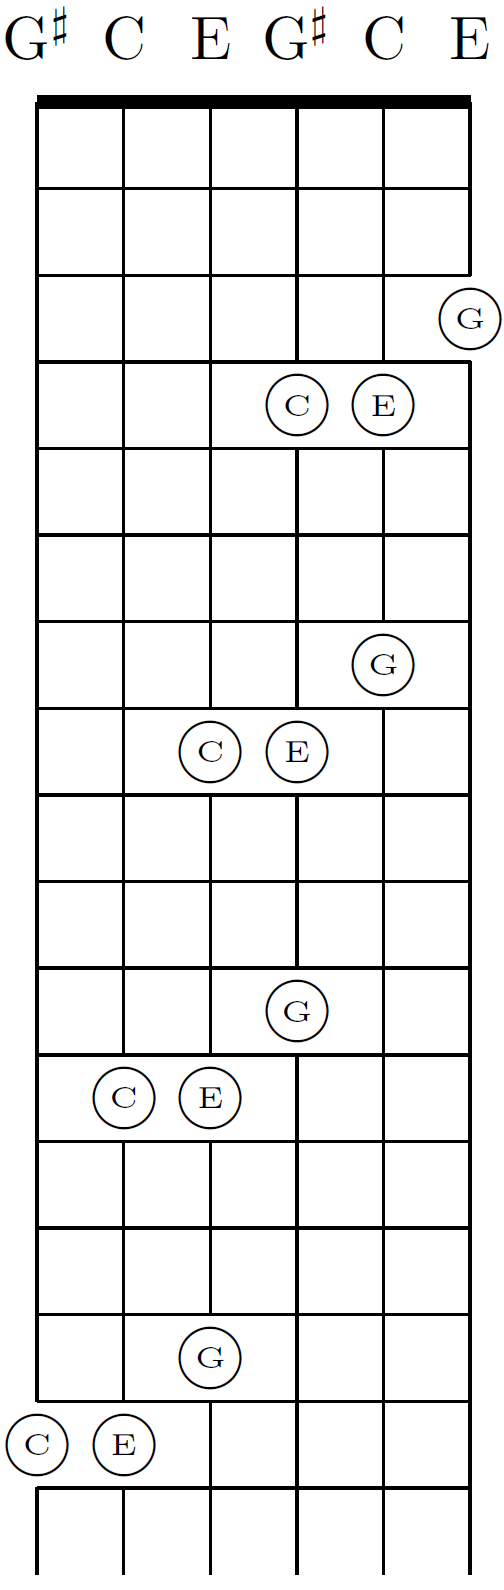 Guitar chords shifting